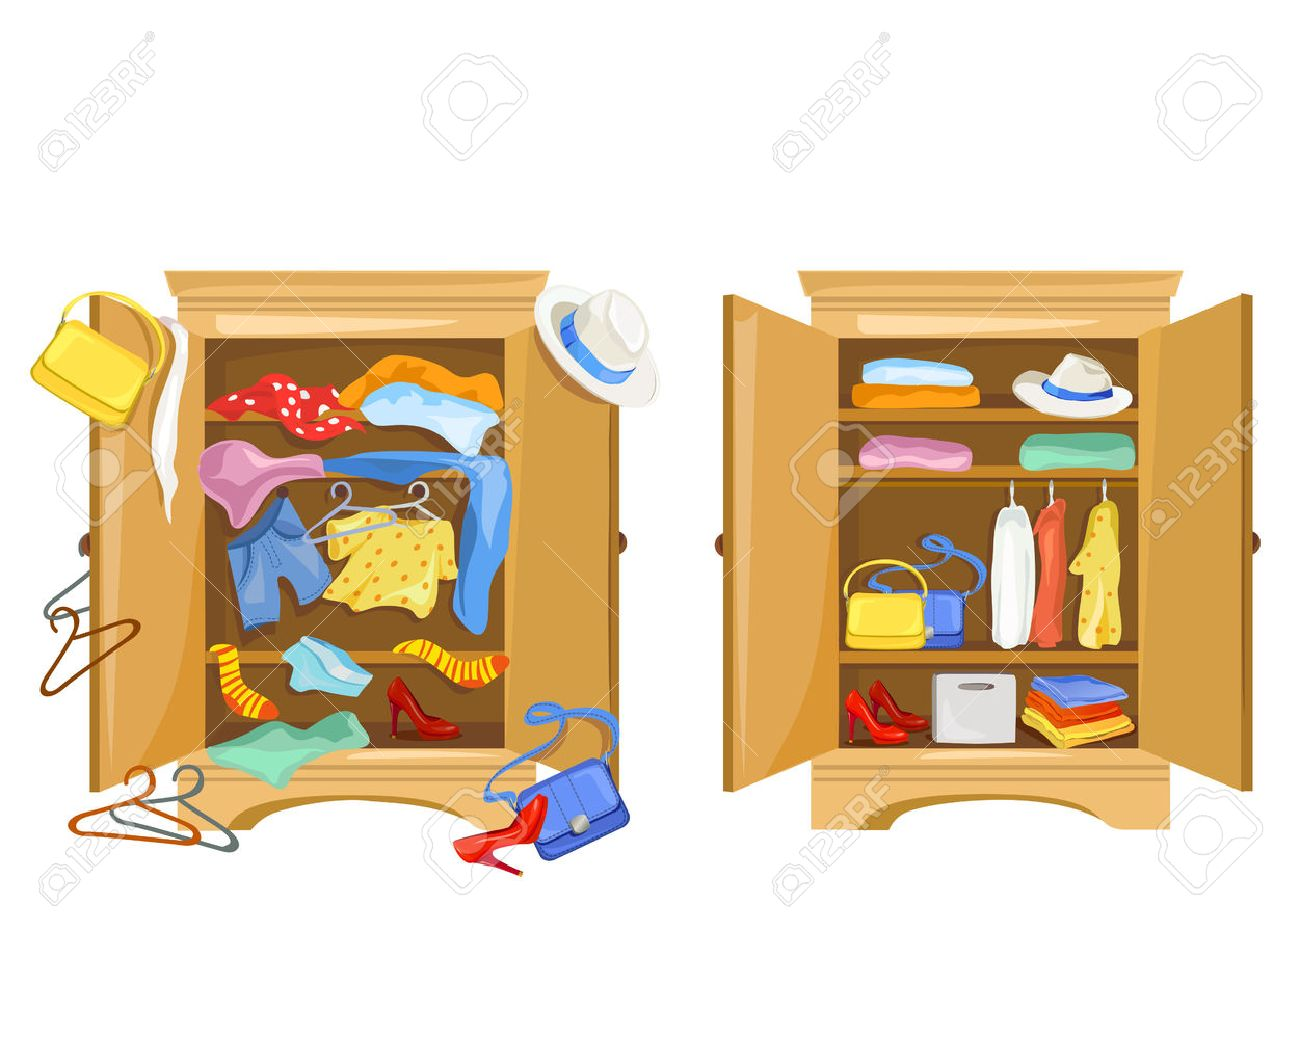 Wardrobe clipart  Wardrobes With Clothes. Tidy And Clutter In The Closet. Vector ...